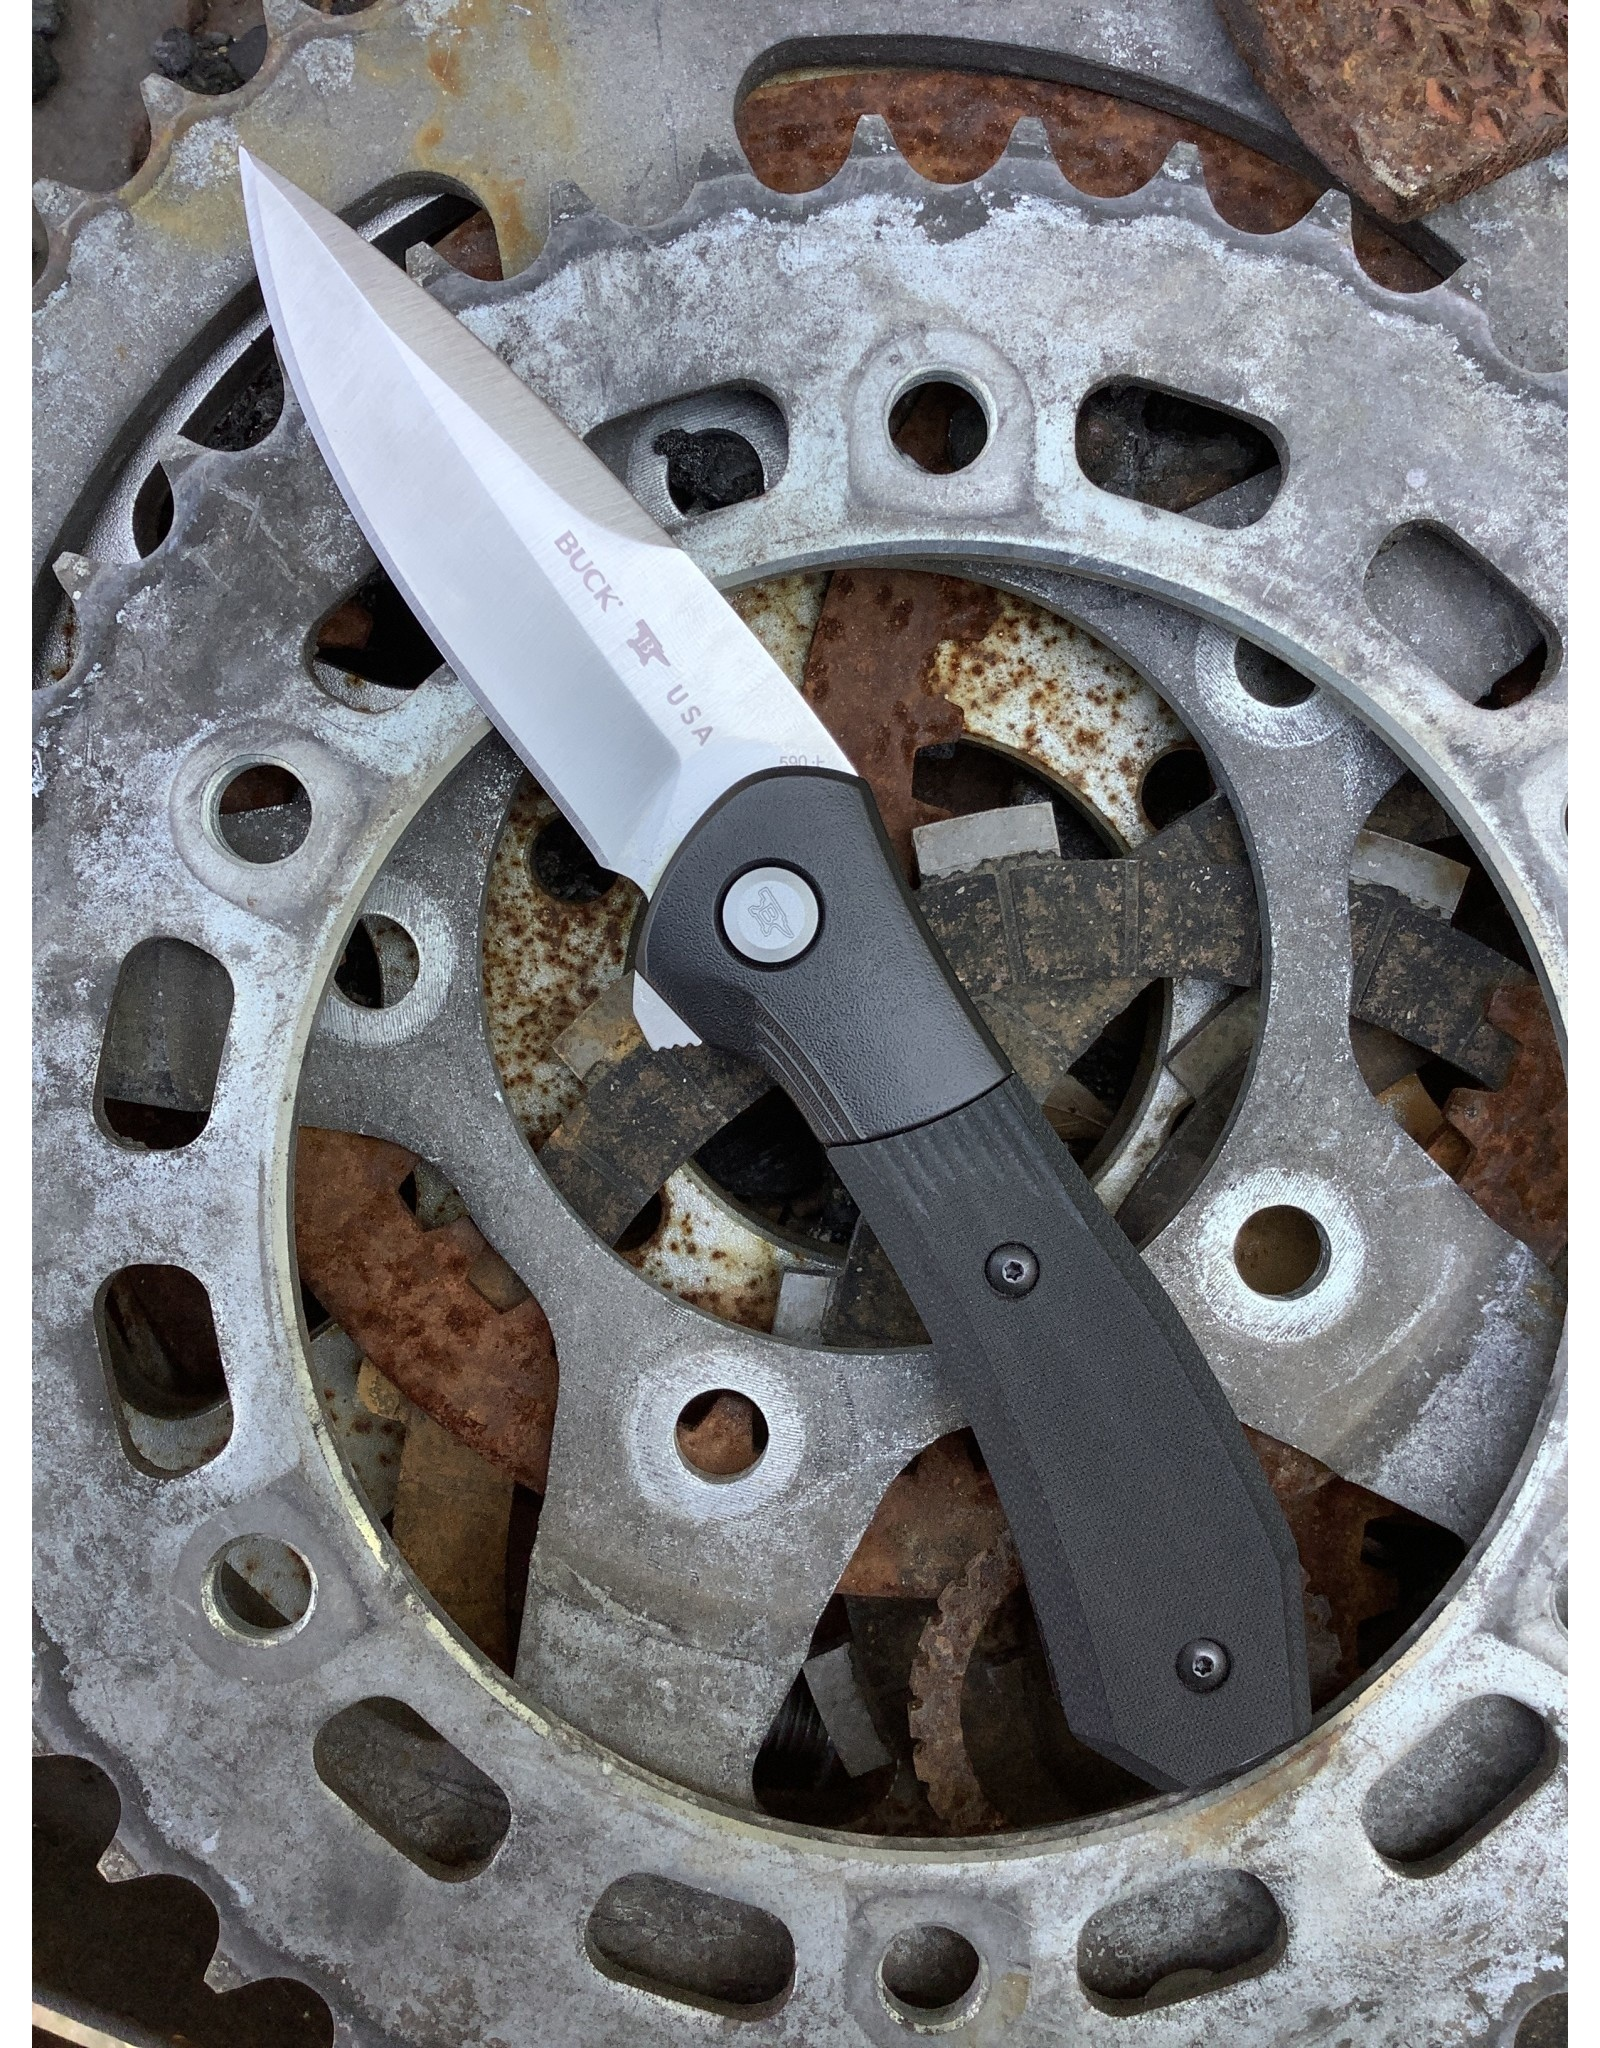 Buck BUCK Paradigm Spring Assist with S35VN blade and Black G-10